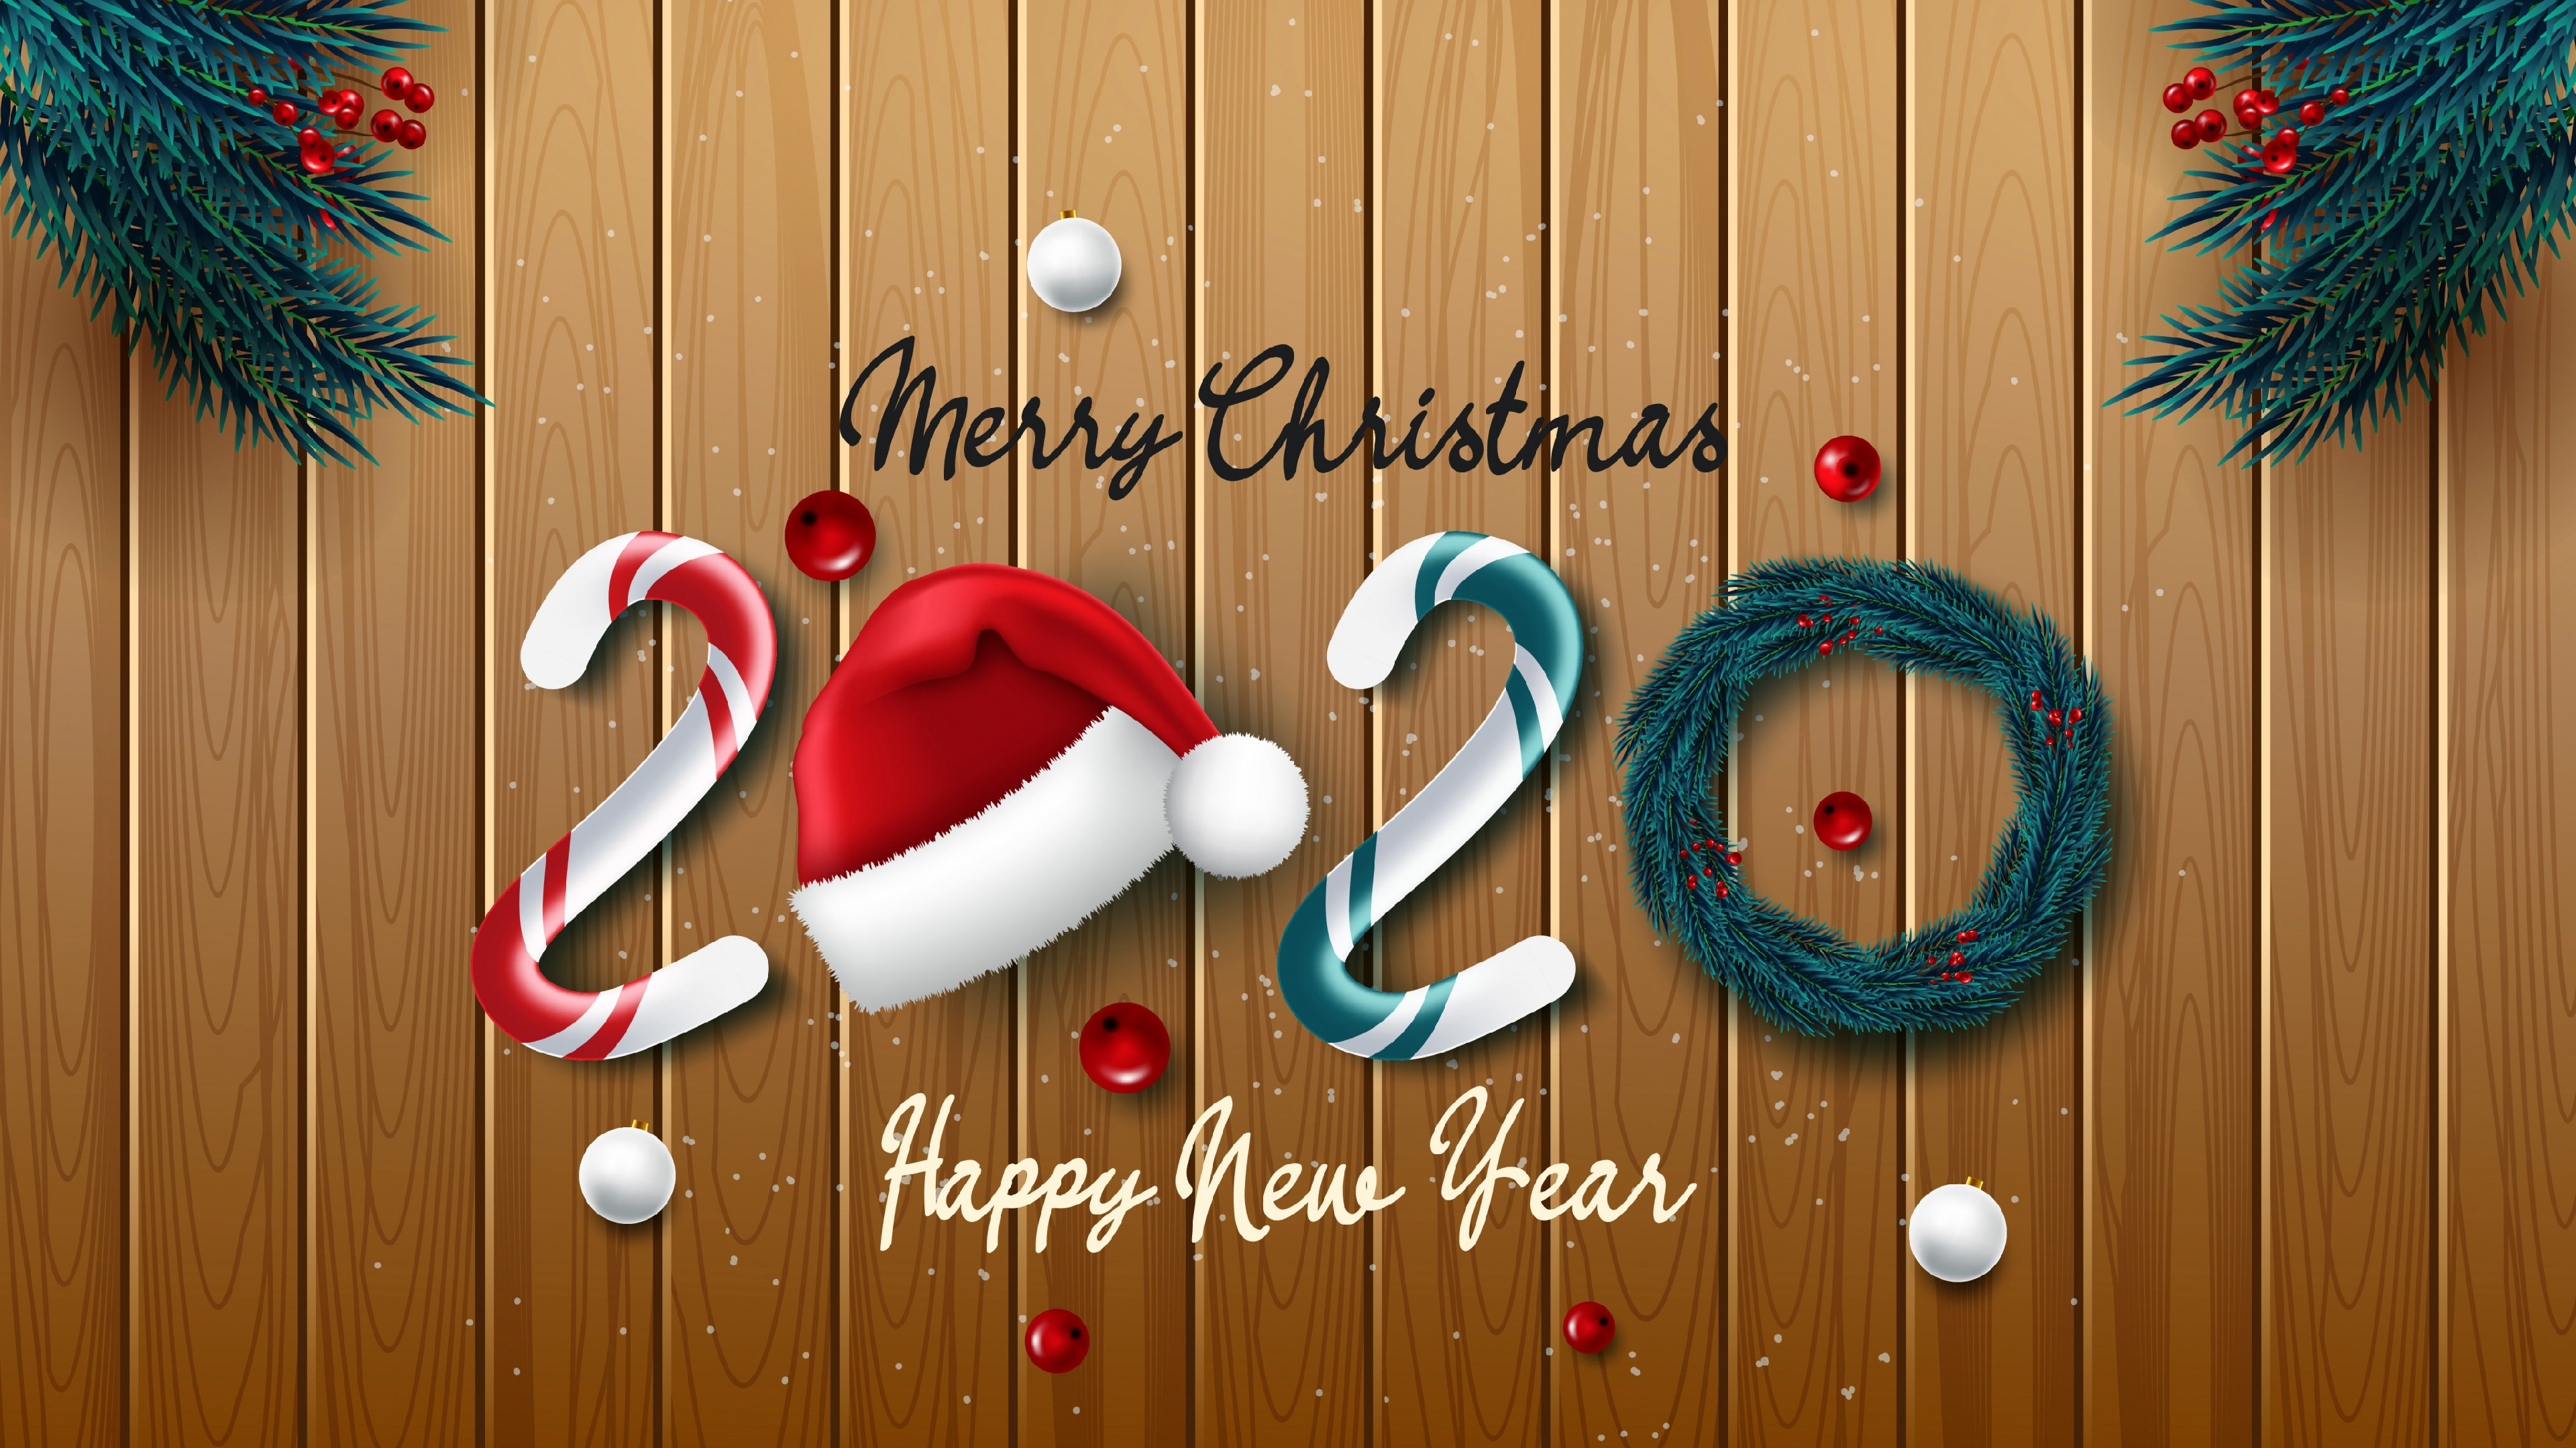 2020 Merry Christmas and Happy New Year wallpaper